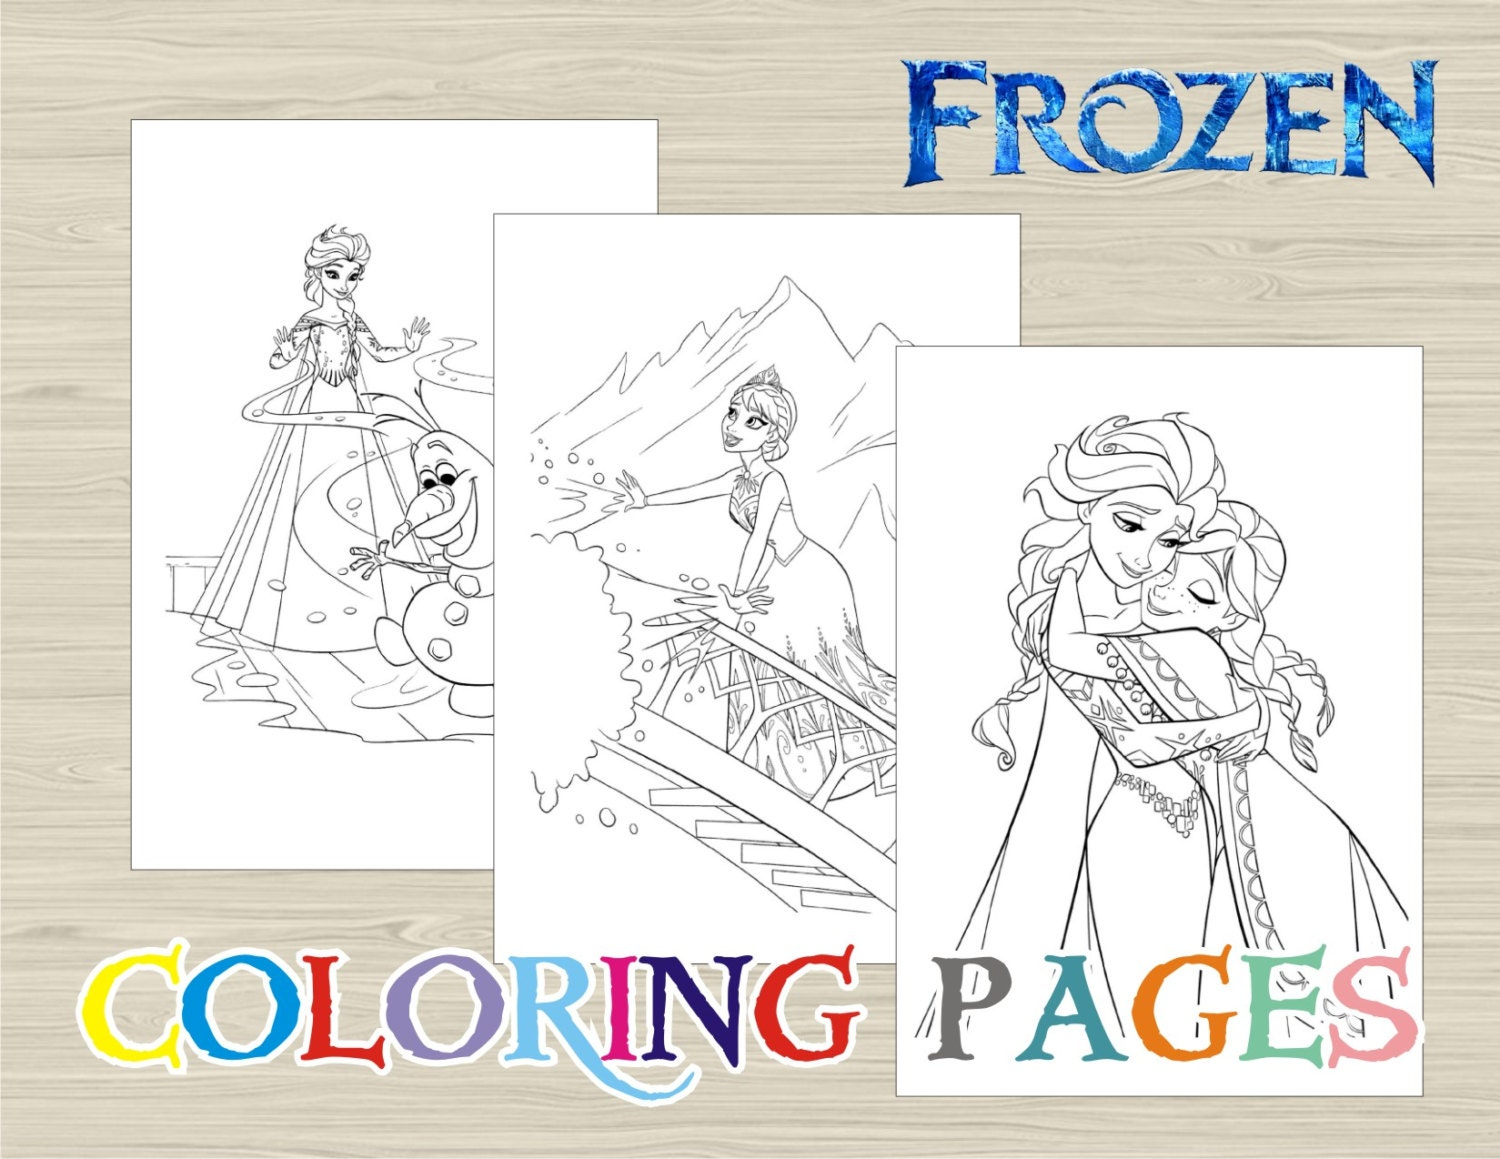 Frozen Coloring Pages A4 : Frozen colouring pages a free coloring of